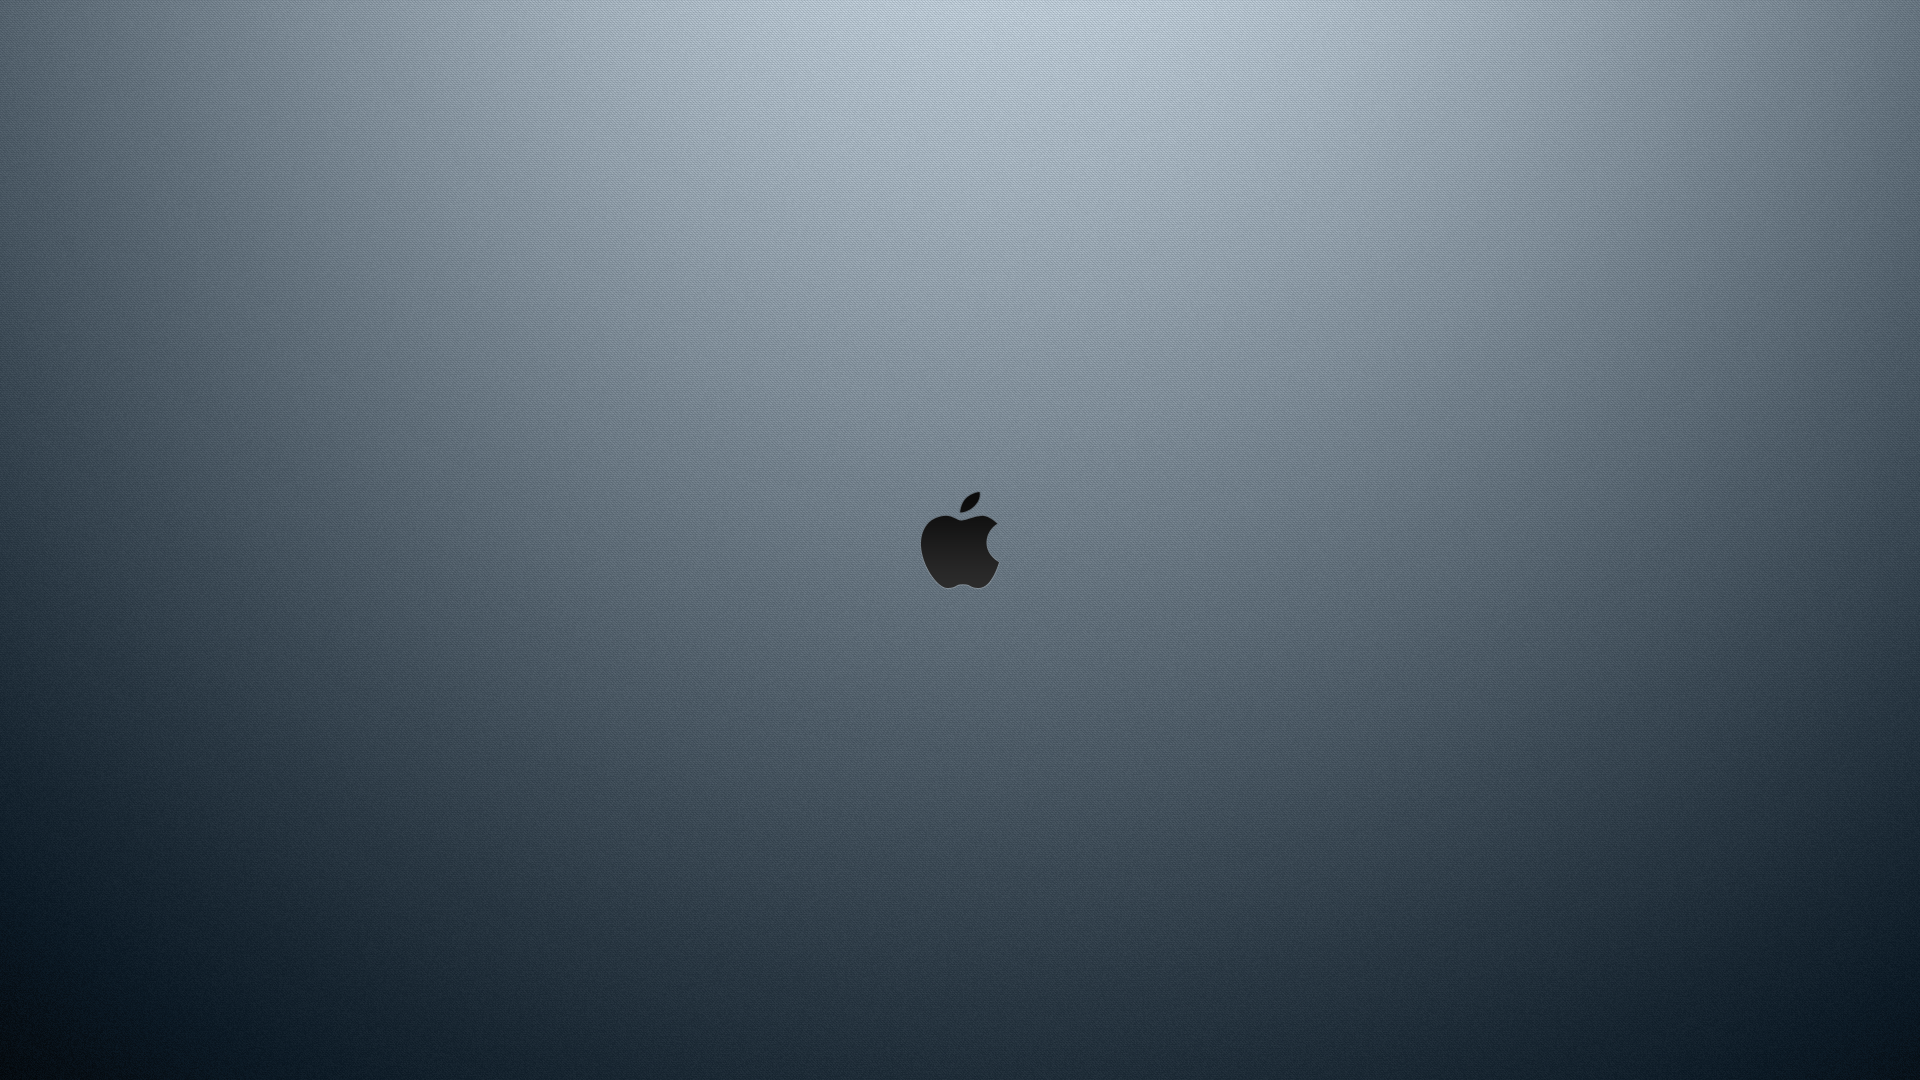 Apple OS X Gradient Wallpaper